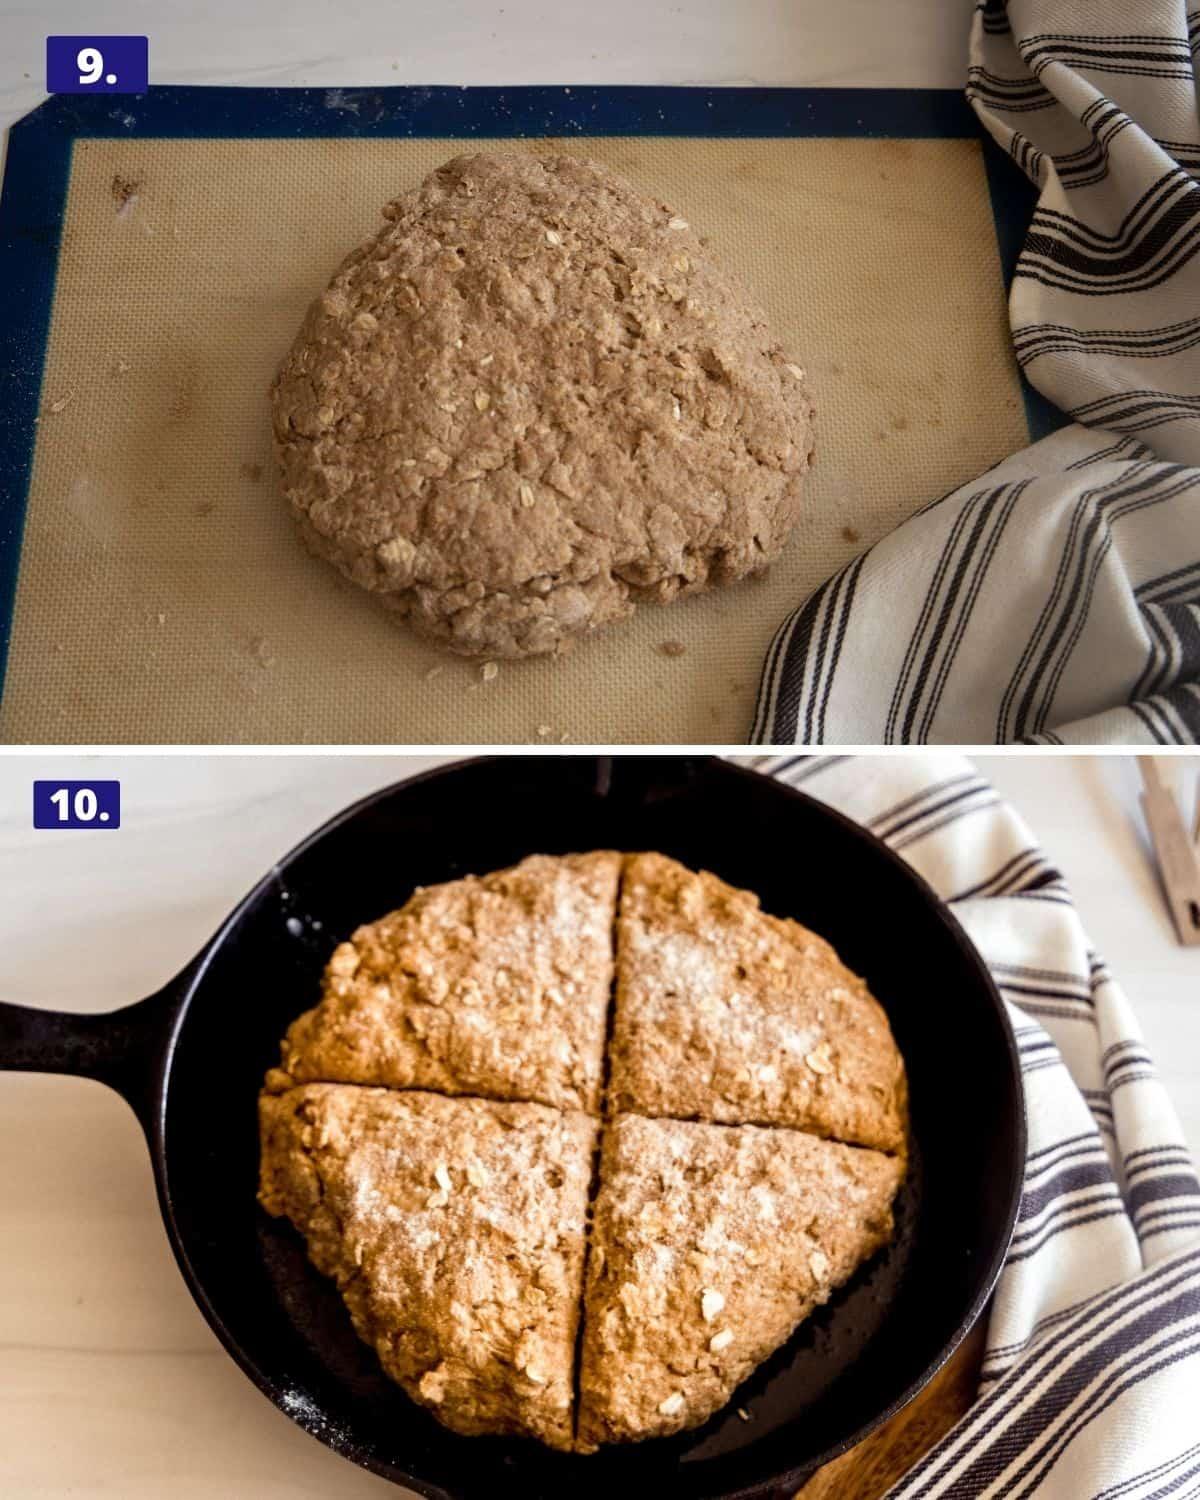 A collage, 1st photo is a round shaped brown bread on a Silpat pad. 2nd photo, the same rounded loaf in a cast iron skillet with an x marked through the dough.